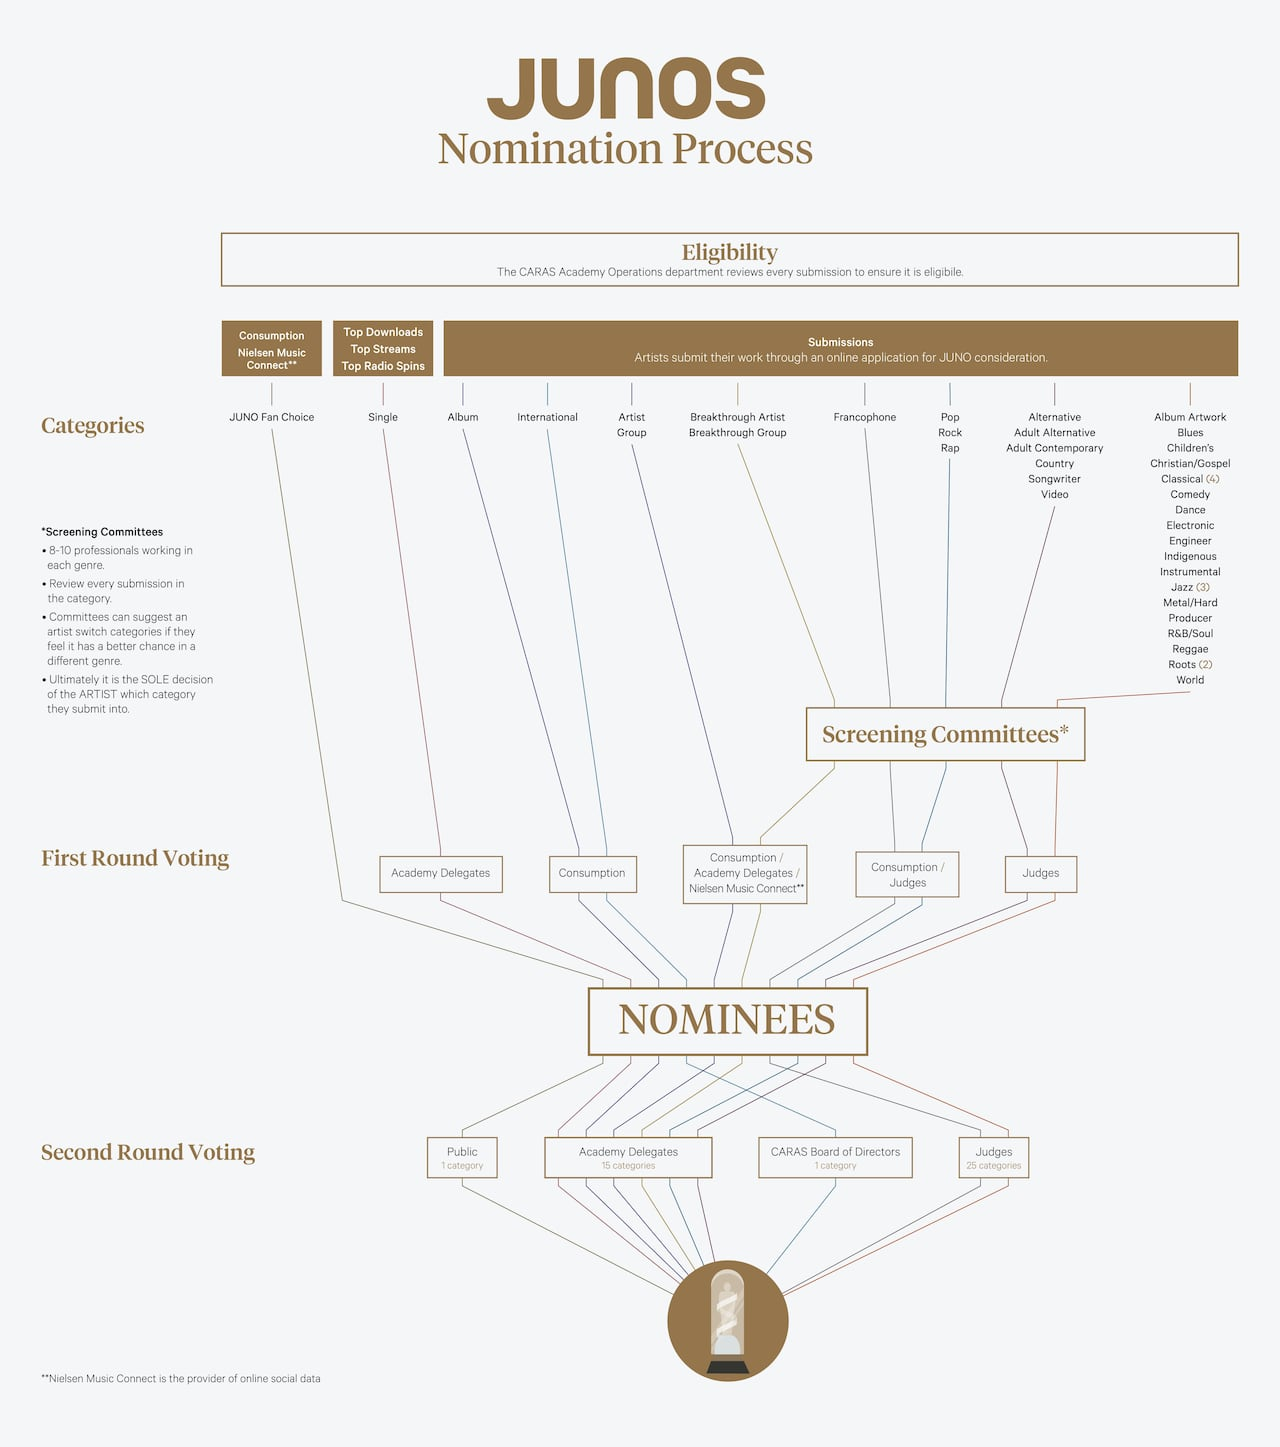 Why do women make up only 1/3 of Juno nominees?   CBC Music Jazz B Series Parallel Wiring Diagram on series parallel solenoid, series wiring christmas lights, series versus parallel wiring, series circuit, series vs. parallel subwoofer diagram, series parallel strat wiring, series vs parallel wiring, series parallel switch, series parallel relay, series wiring in ceiling lights, simple circuit diagram, series parallel wiring ohms, series wiring for homes, series parallel system, series parallel lights, series parallel speakers diagram, series wiring fluorescent lights in check, series parallel battery, series parallel wire, series parallel speaker wiring,